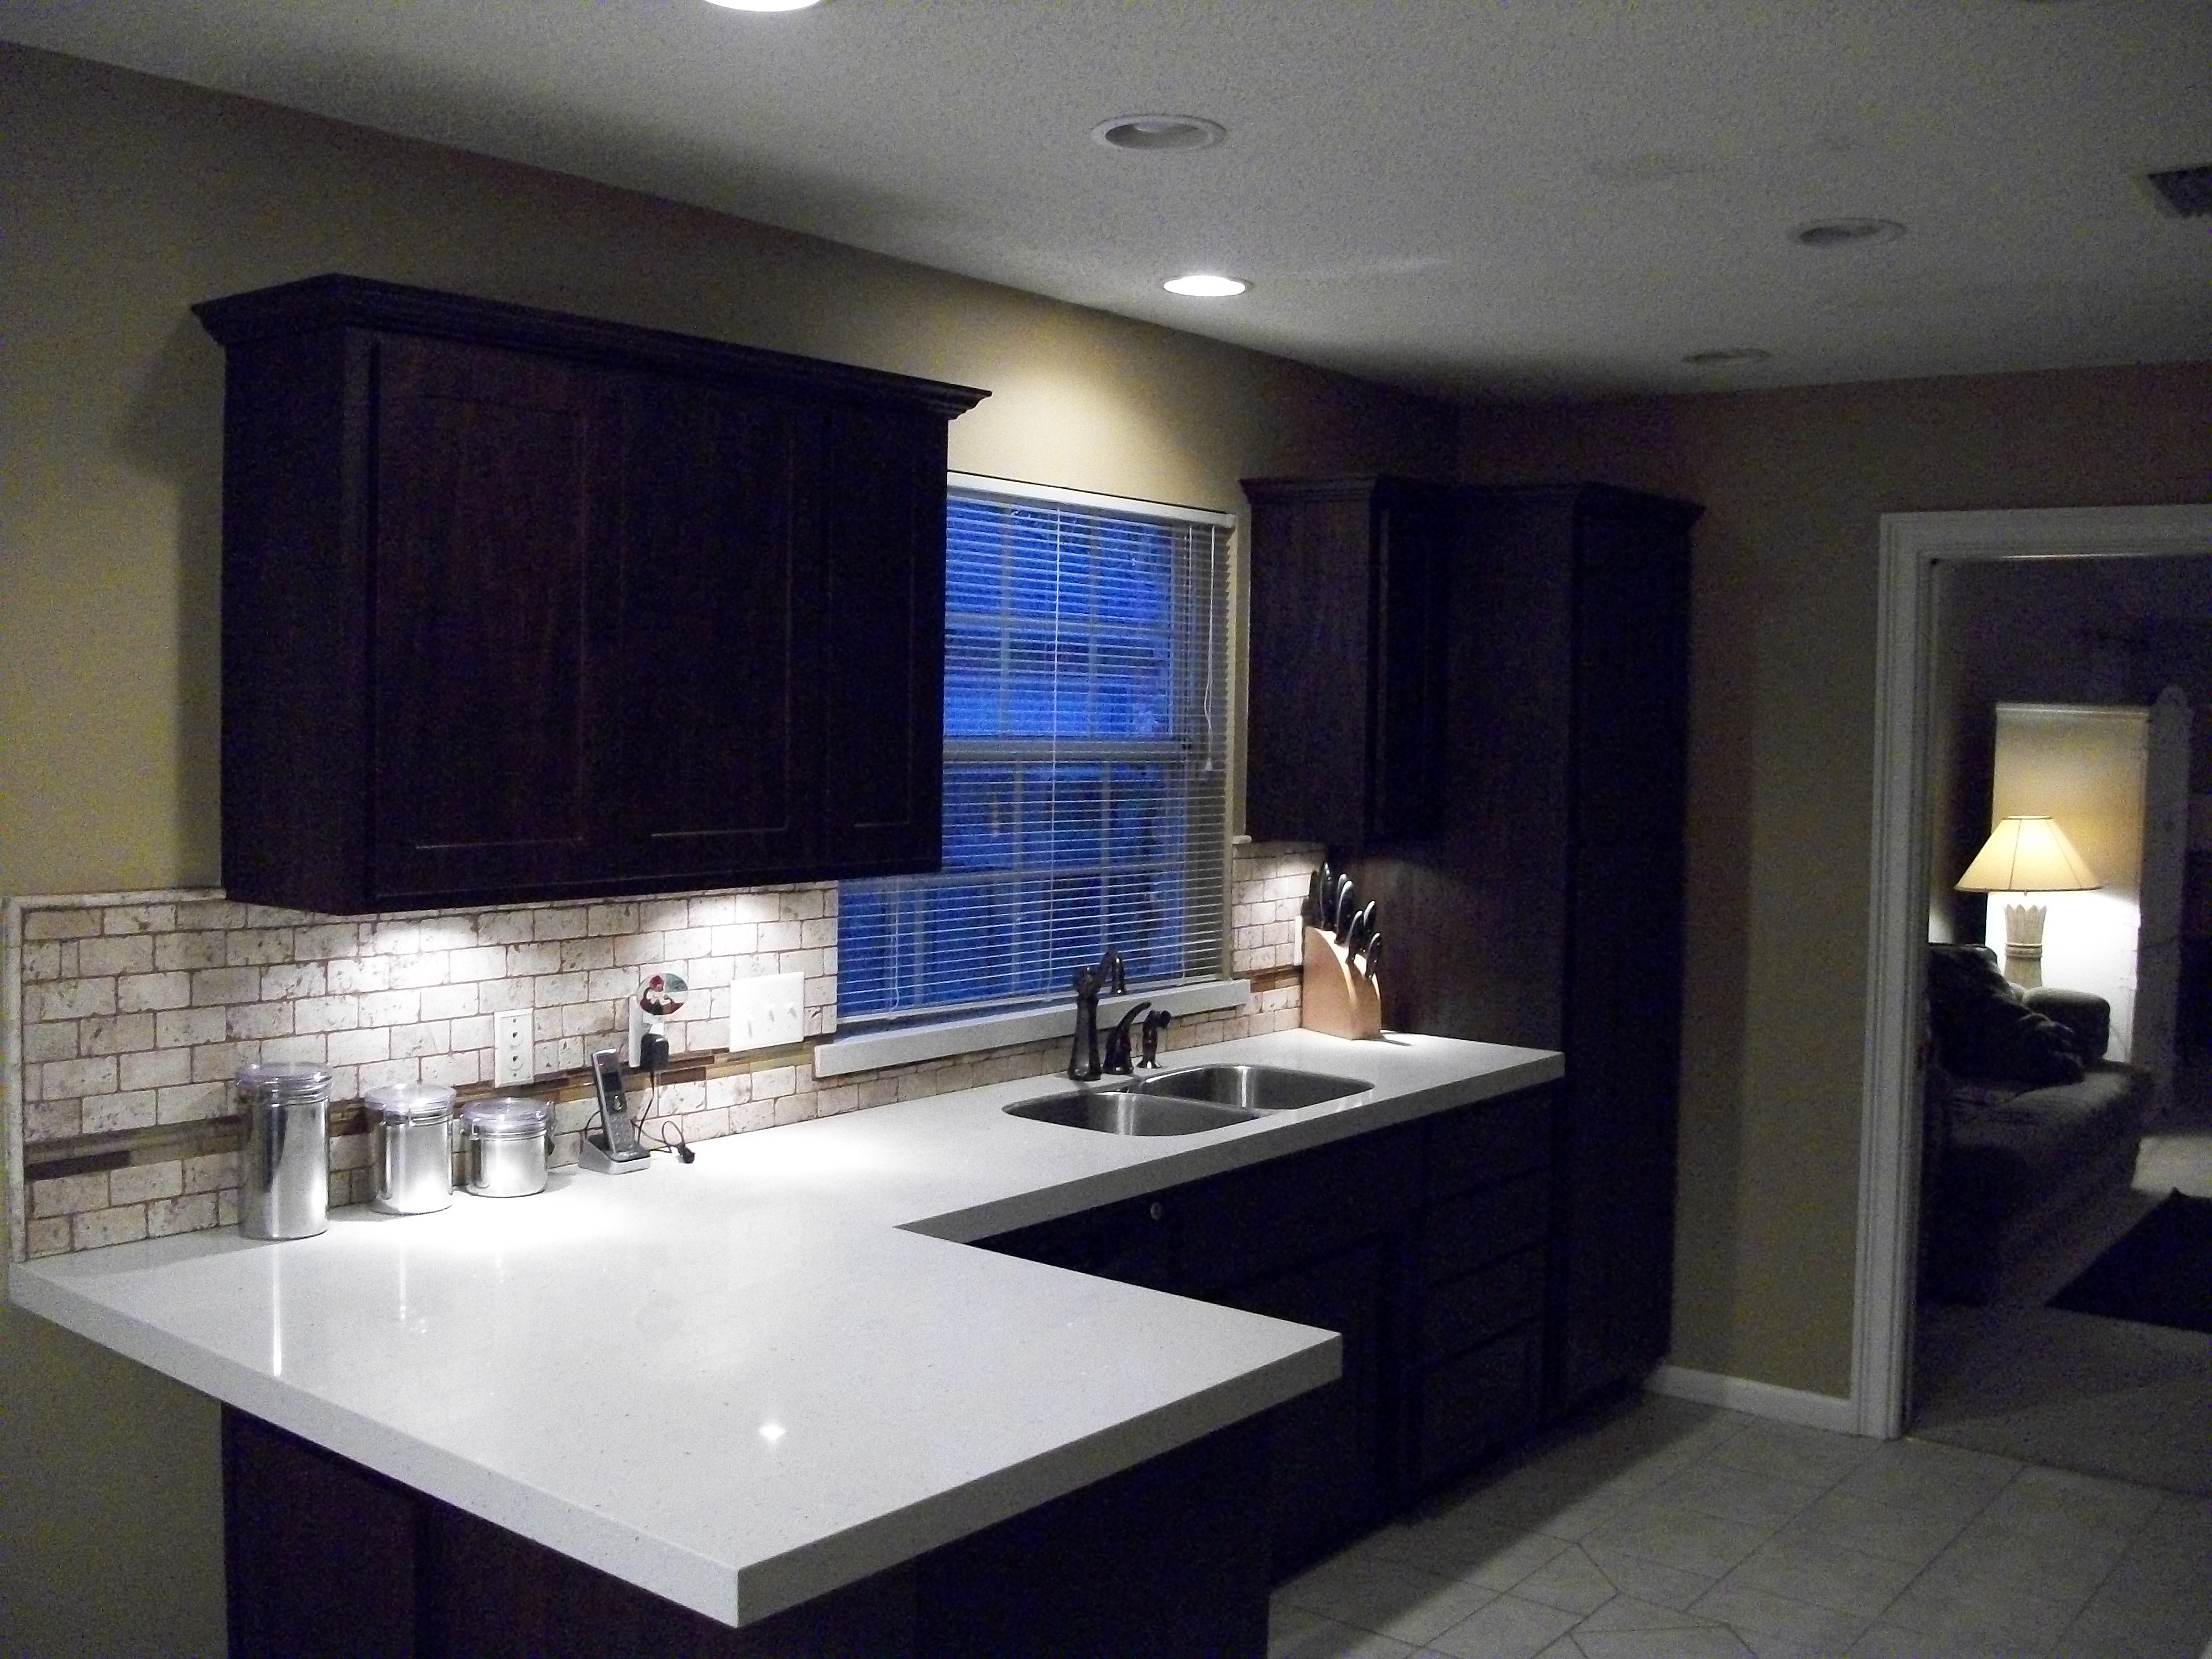 interior kitchen recessed lighting small kitchen light fixture under cabinets and white granite countertop idea juno recessed lighting lighting recessed